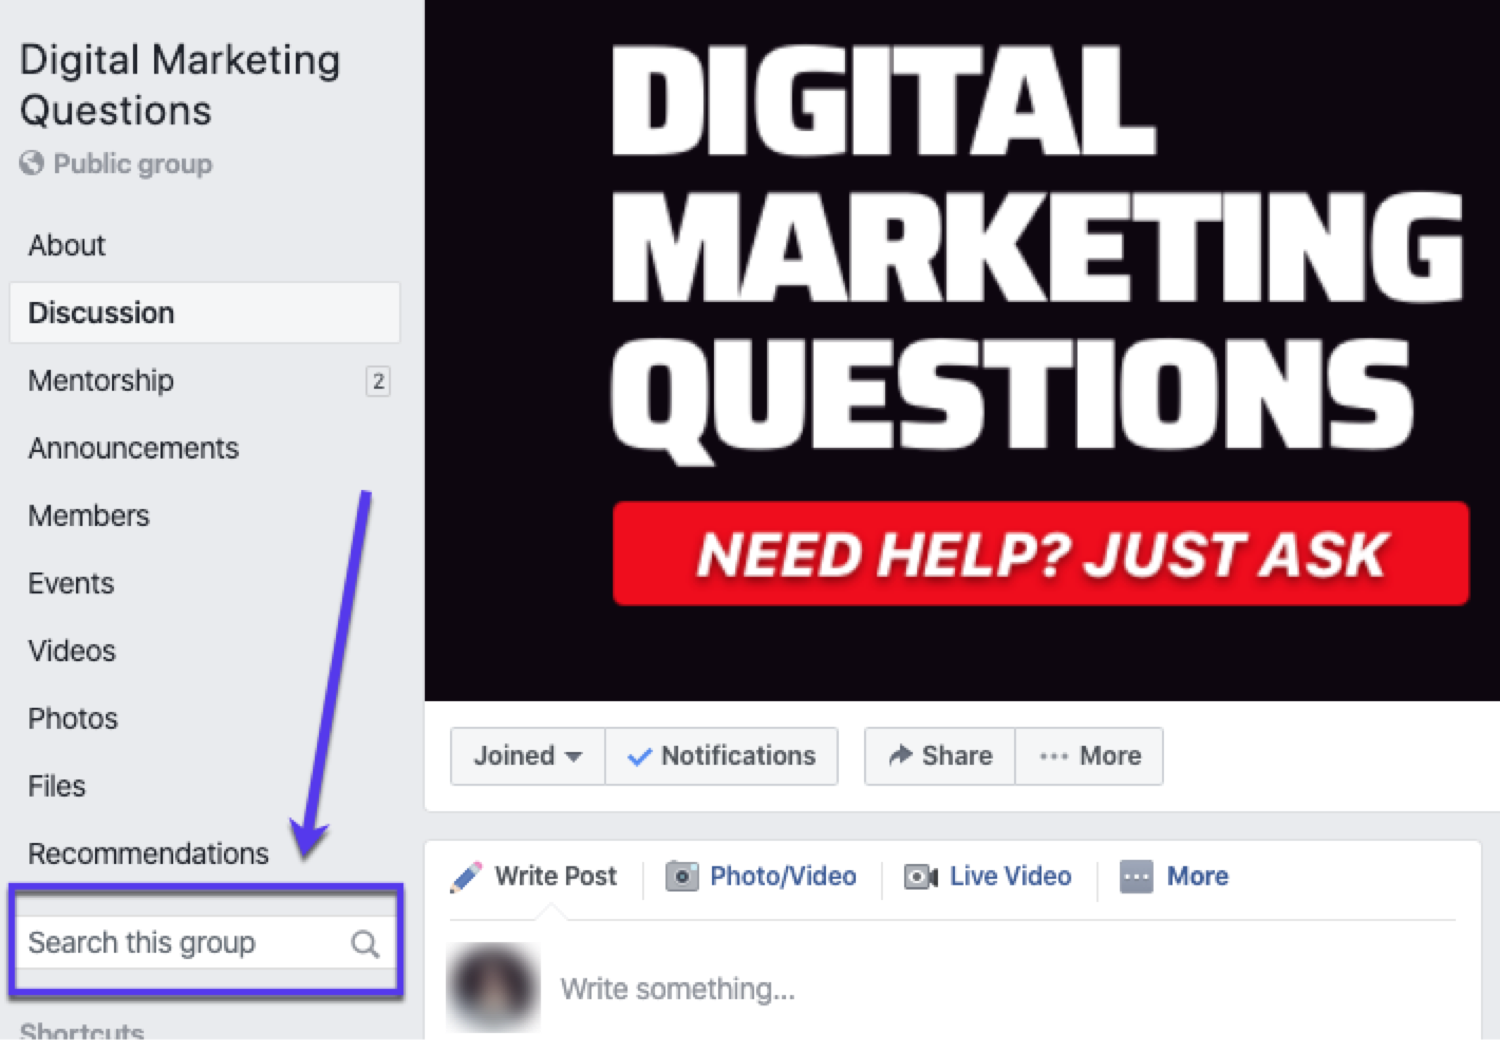 Digital Marketing Questions è un gruppo popolare su Facebook